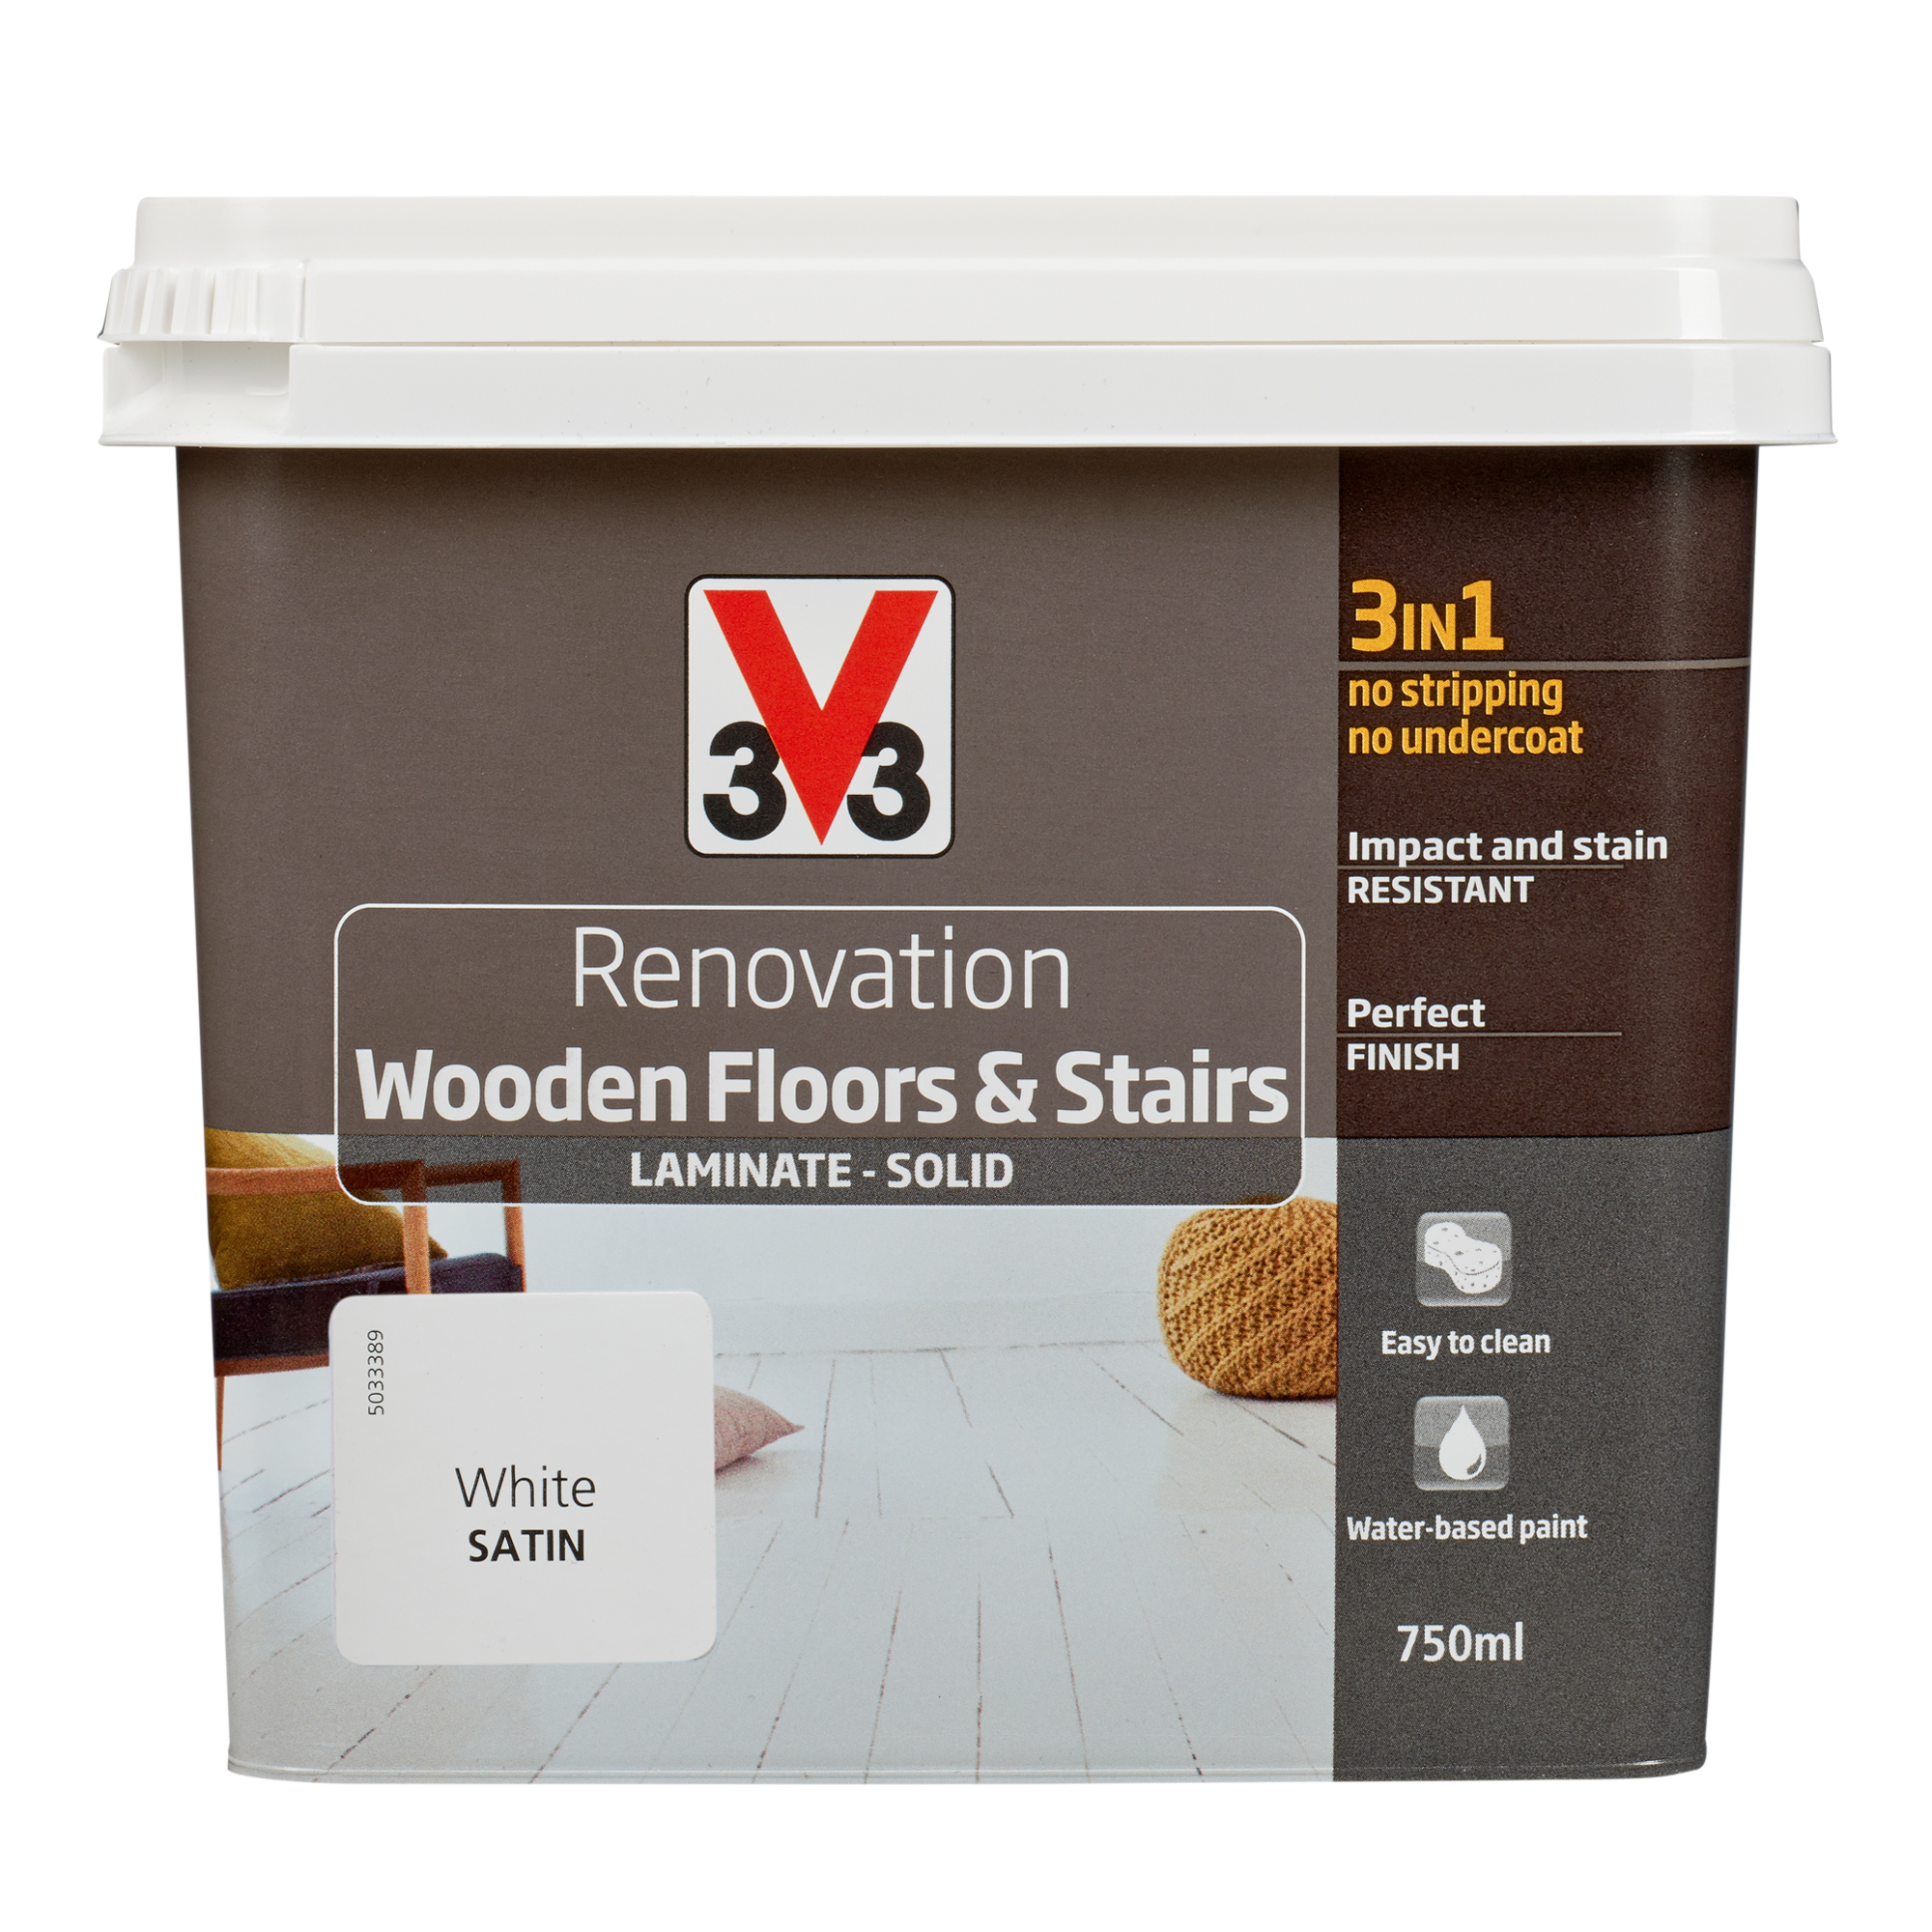 v33 renovation wooden floors stairs